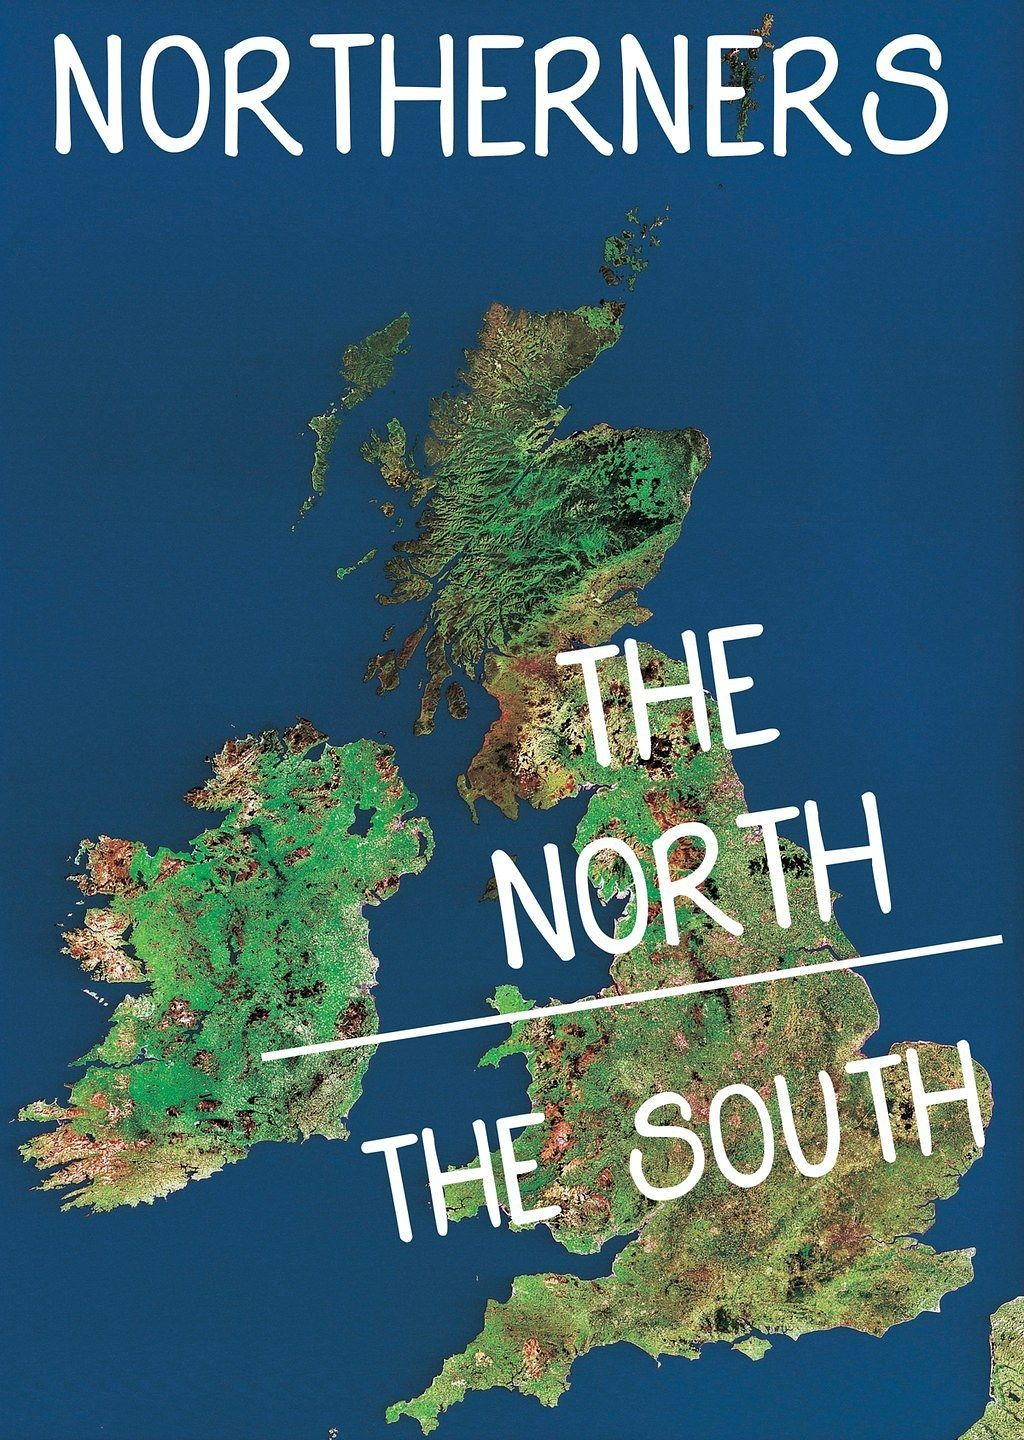 a map showing the northsouth divide according to northerners and southerners